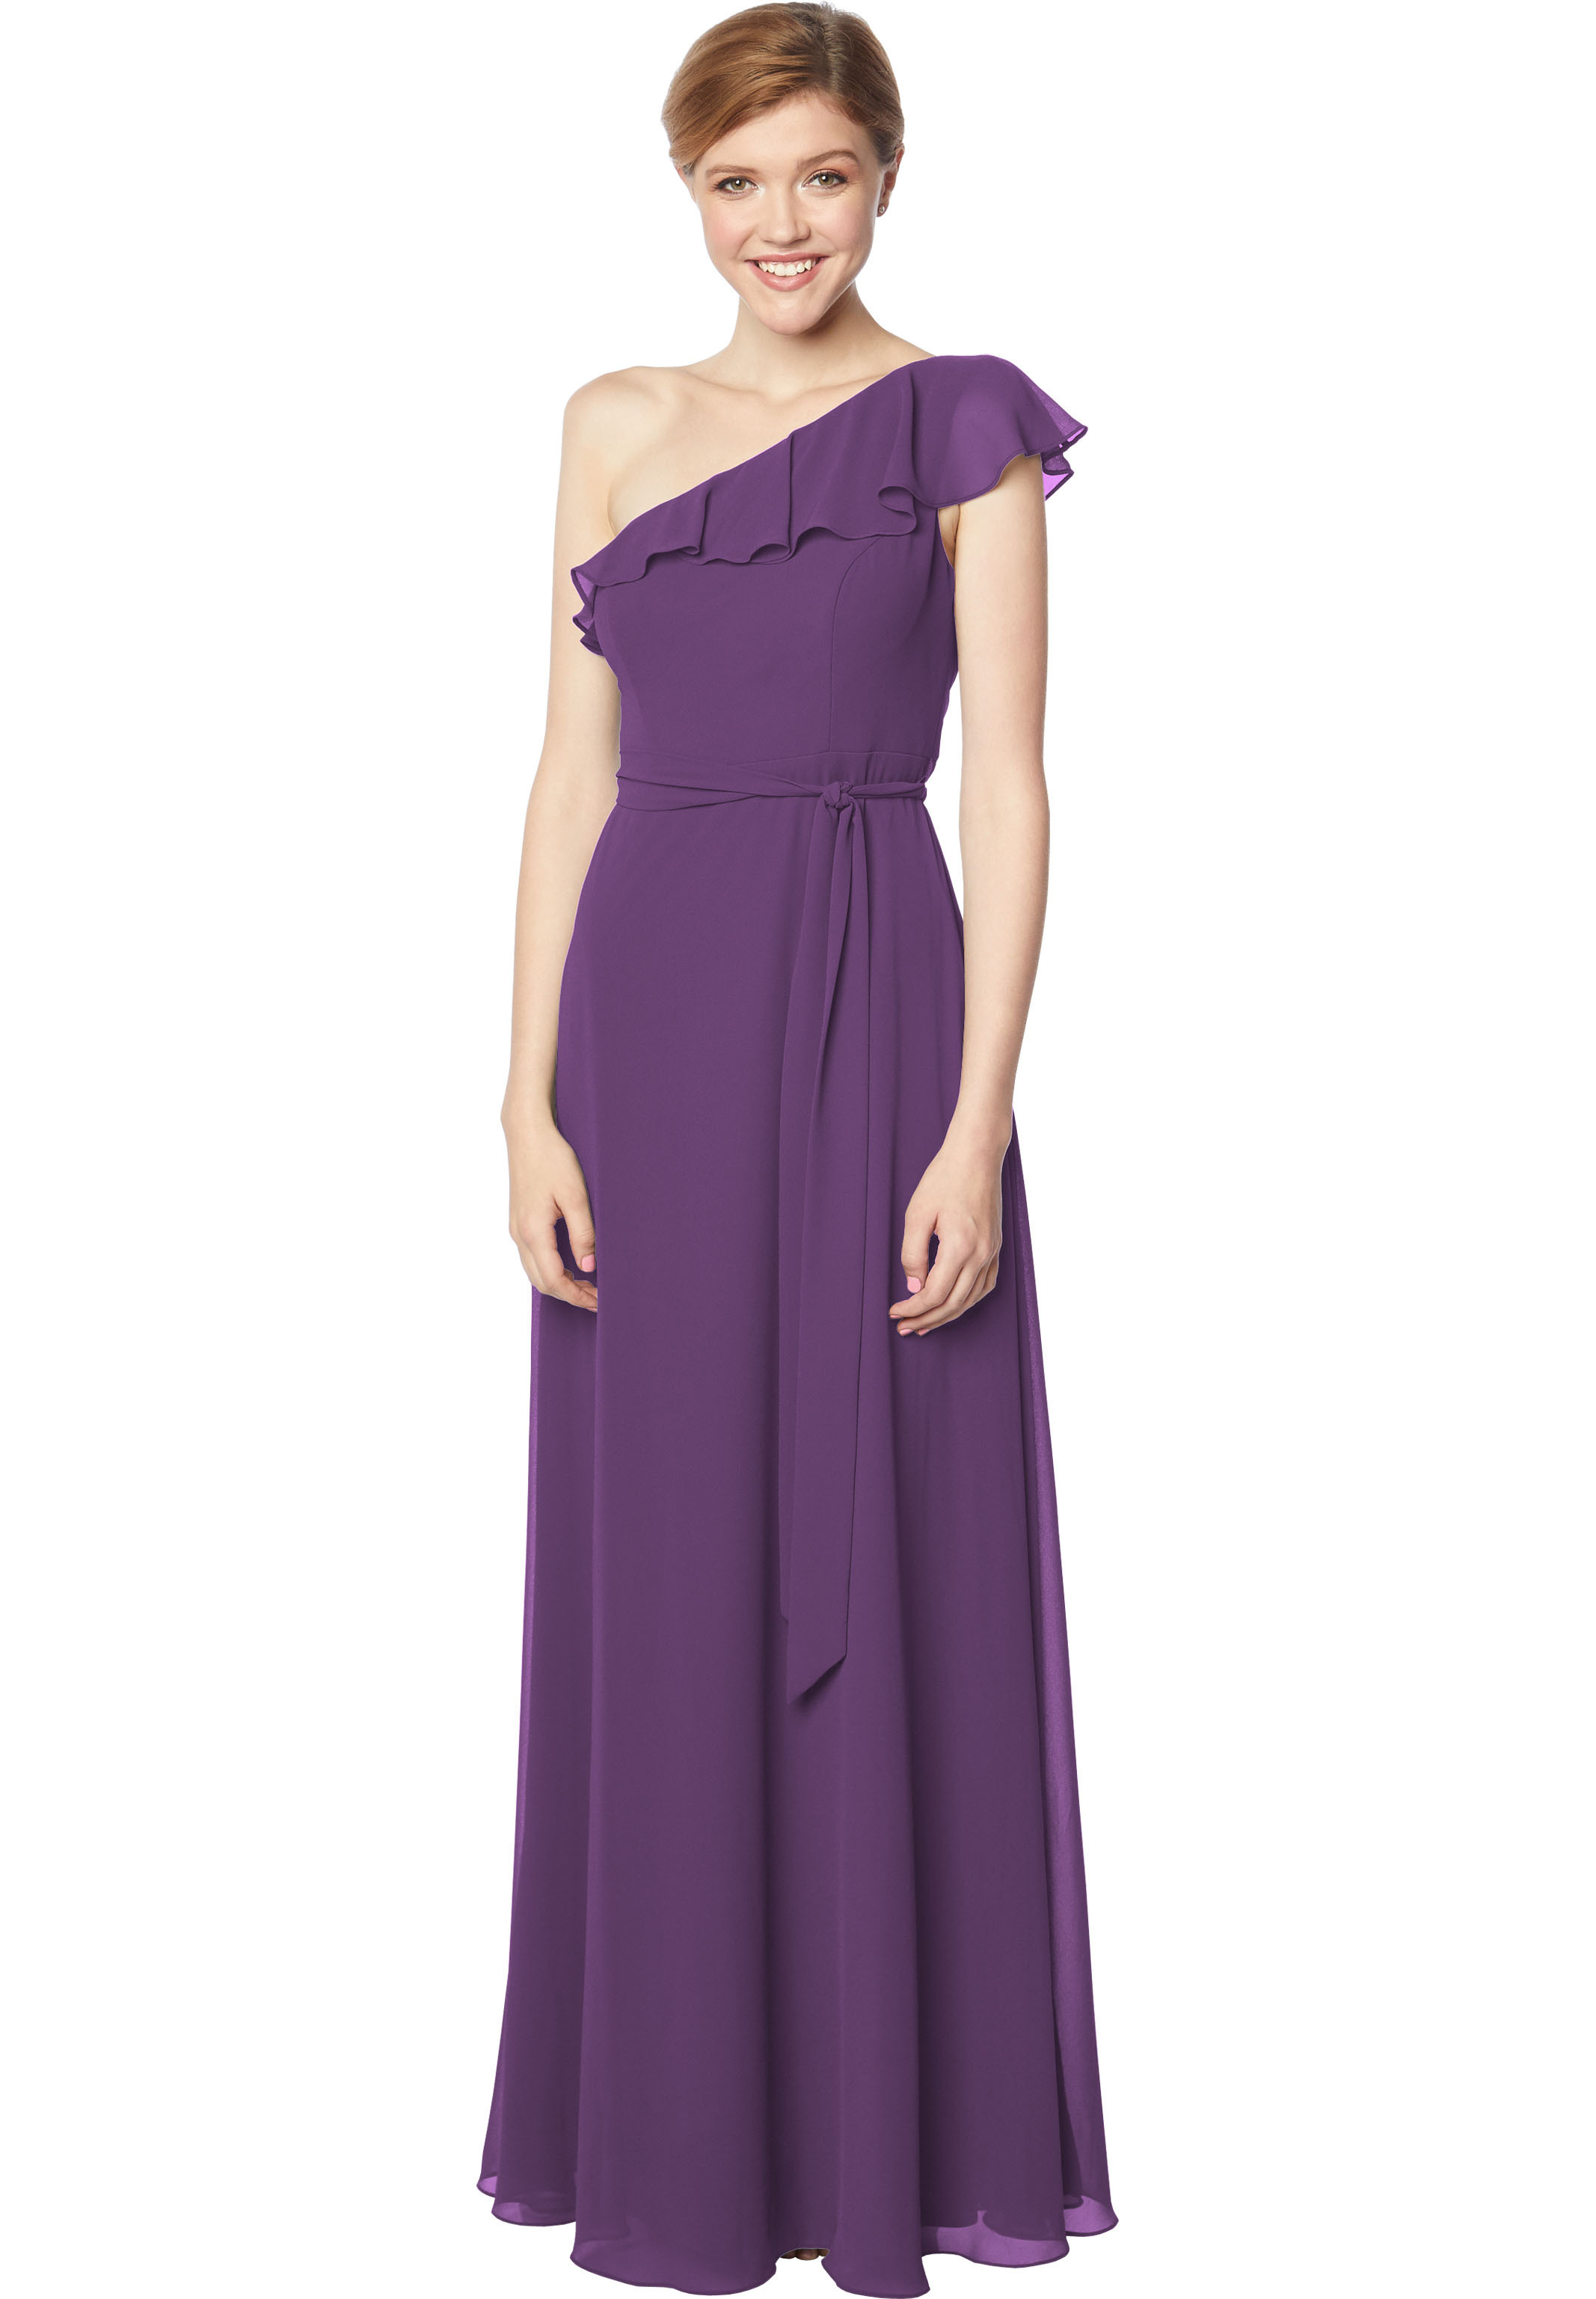 Bill Levkoff PURPLE Chiffon One Shoulder A-line gown, $178.00 Front